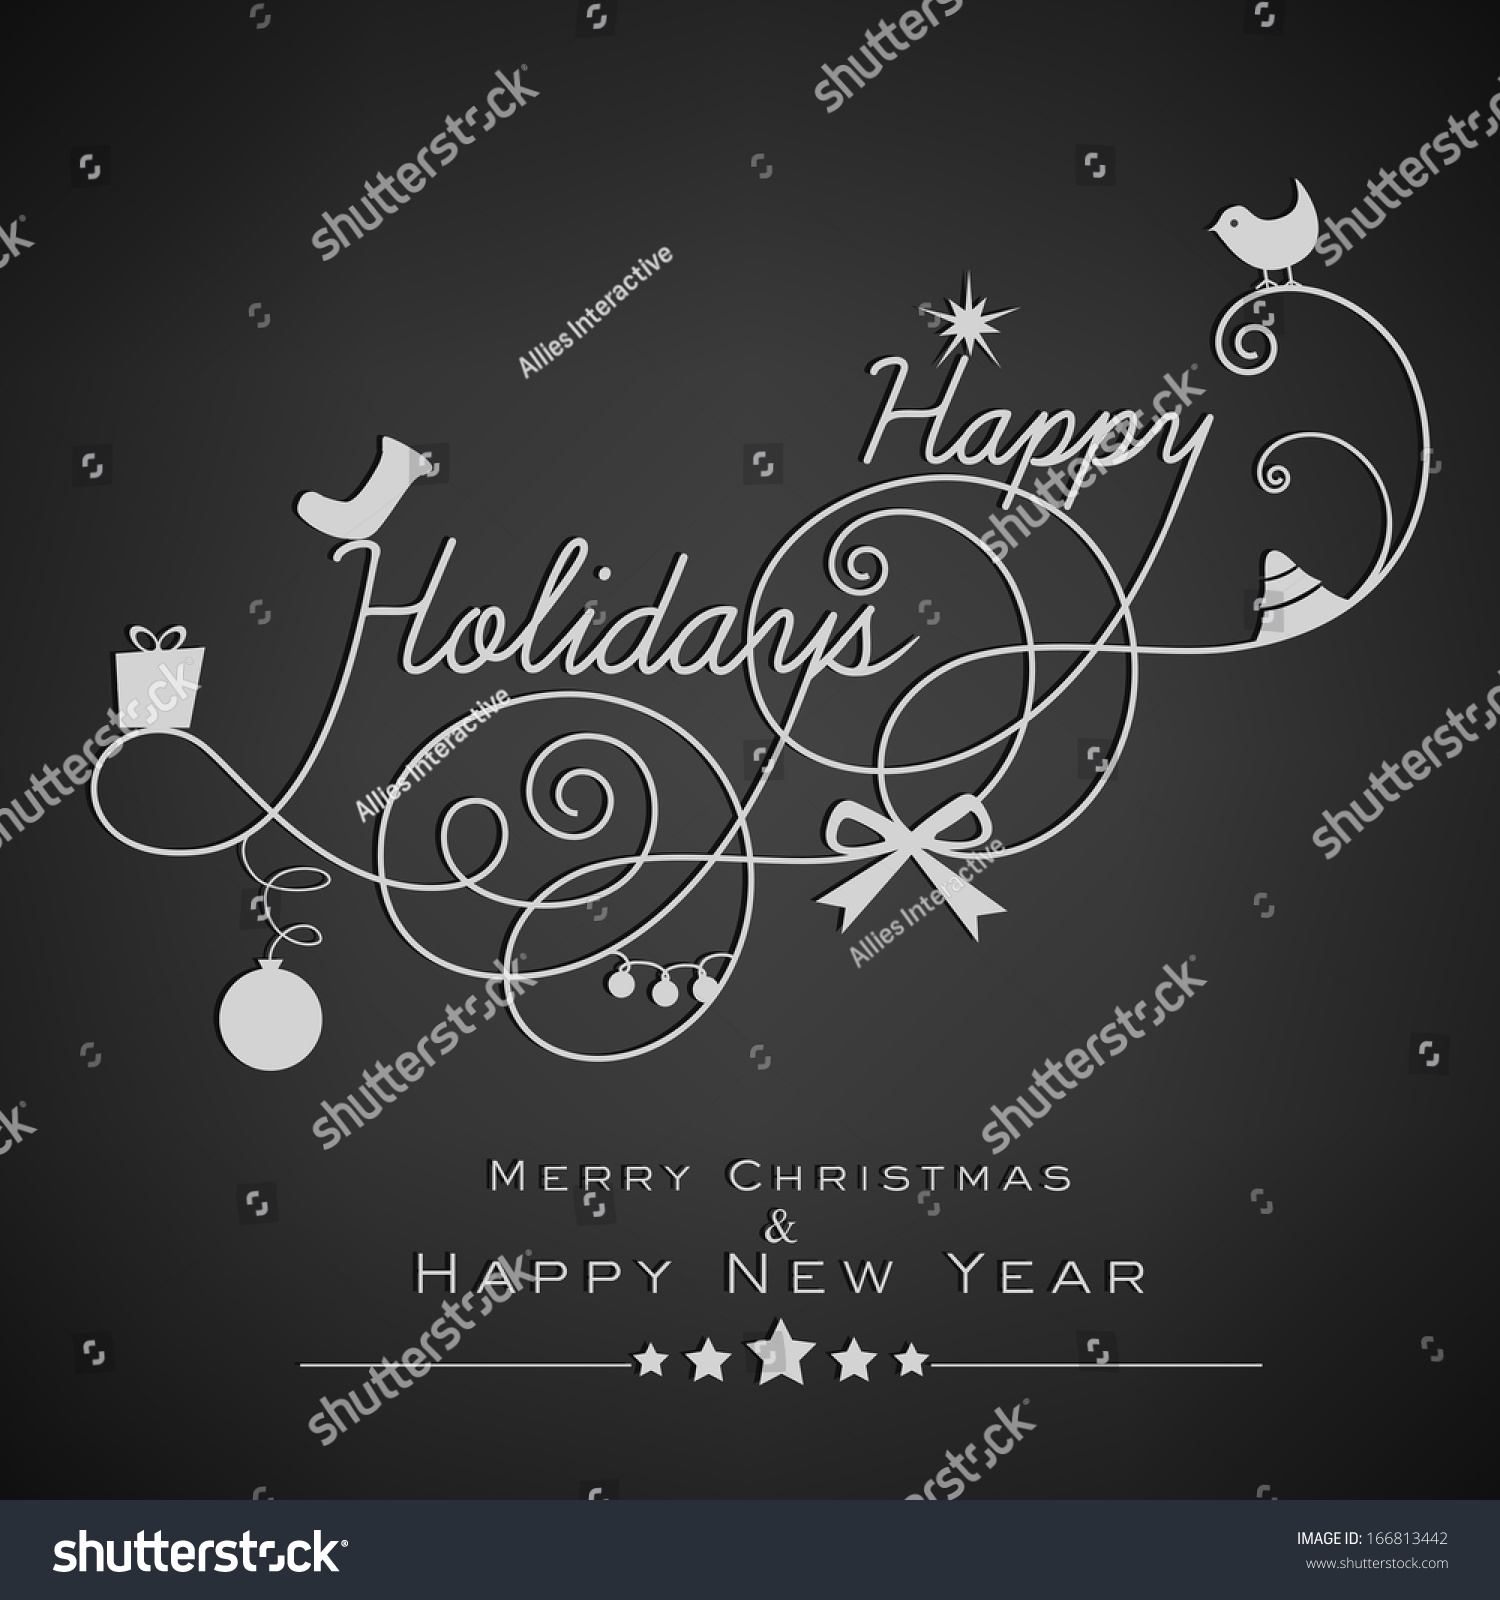 Stylish happy holidays text merry christmas stock vector royalty stylish happy holidays text merry christmas and happy new year 2014 celebration greeting card or m4hsunfo